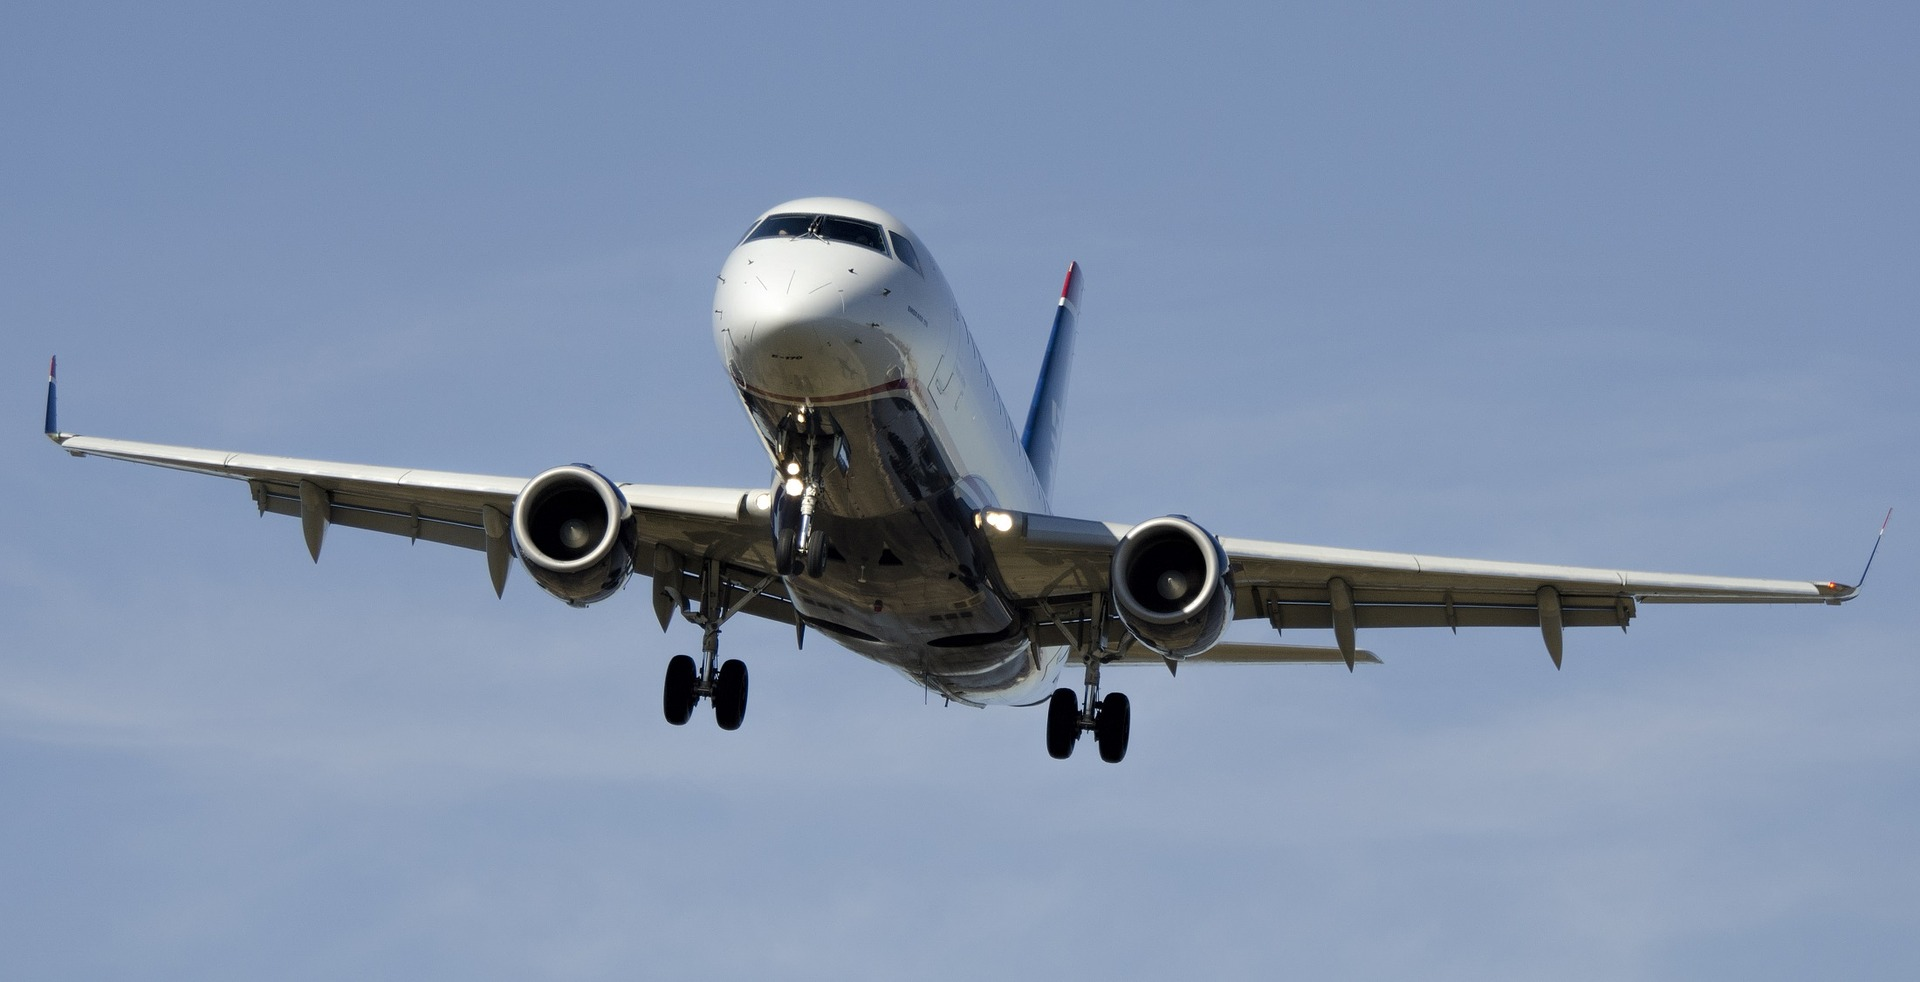 Airplane Aircraft Airline Flight Aviation Aerospace A320 Airbus Landing Wheel Travel – image courtesy of Pixabay.